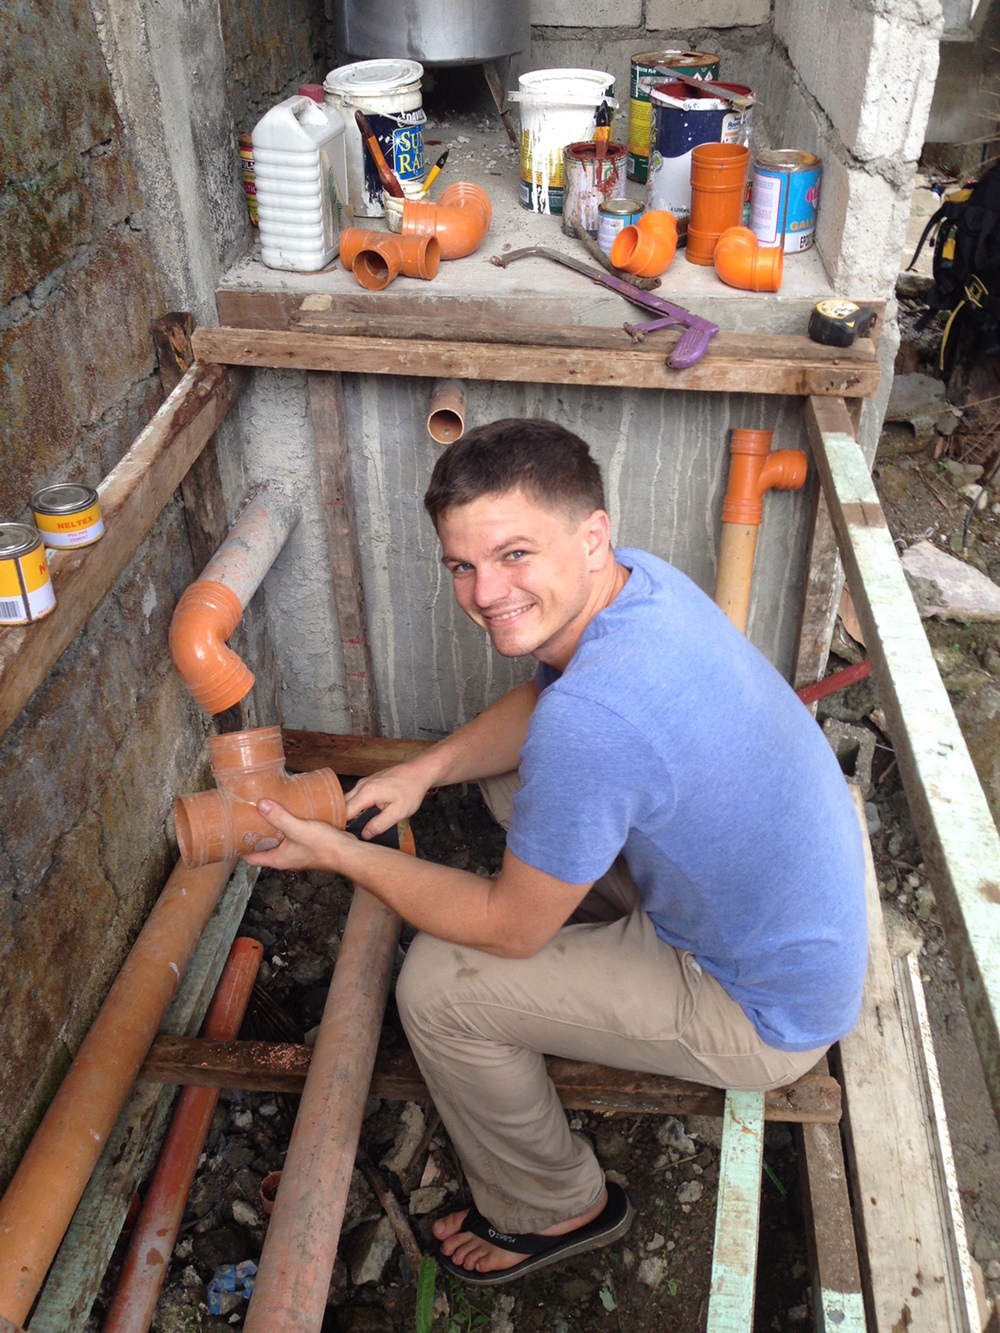 Jason's plumbing skills provided a much needed service to Mercy In Action Midwifery Clinic in Olongapo City, Philippines in 2013.